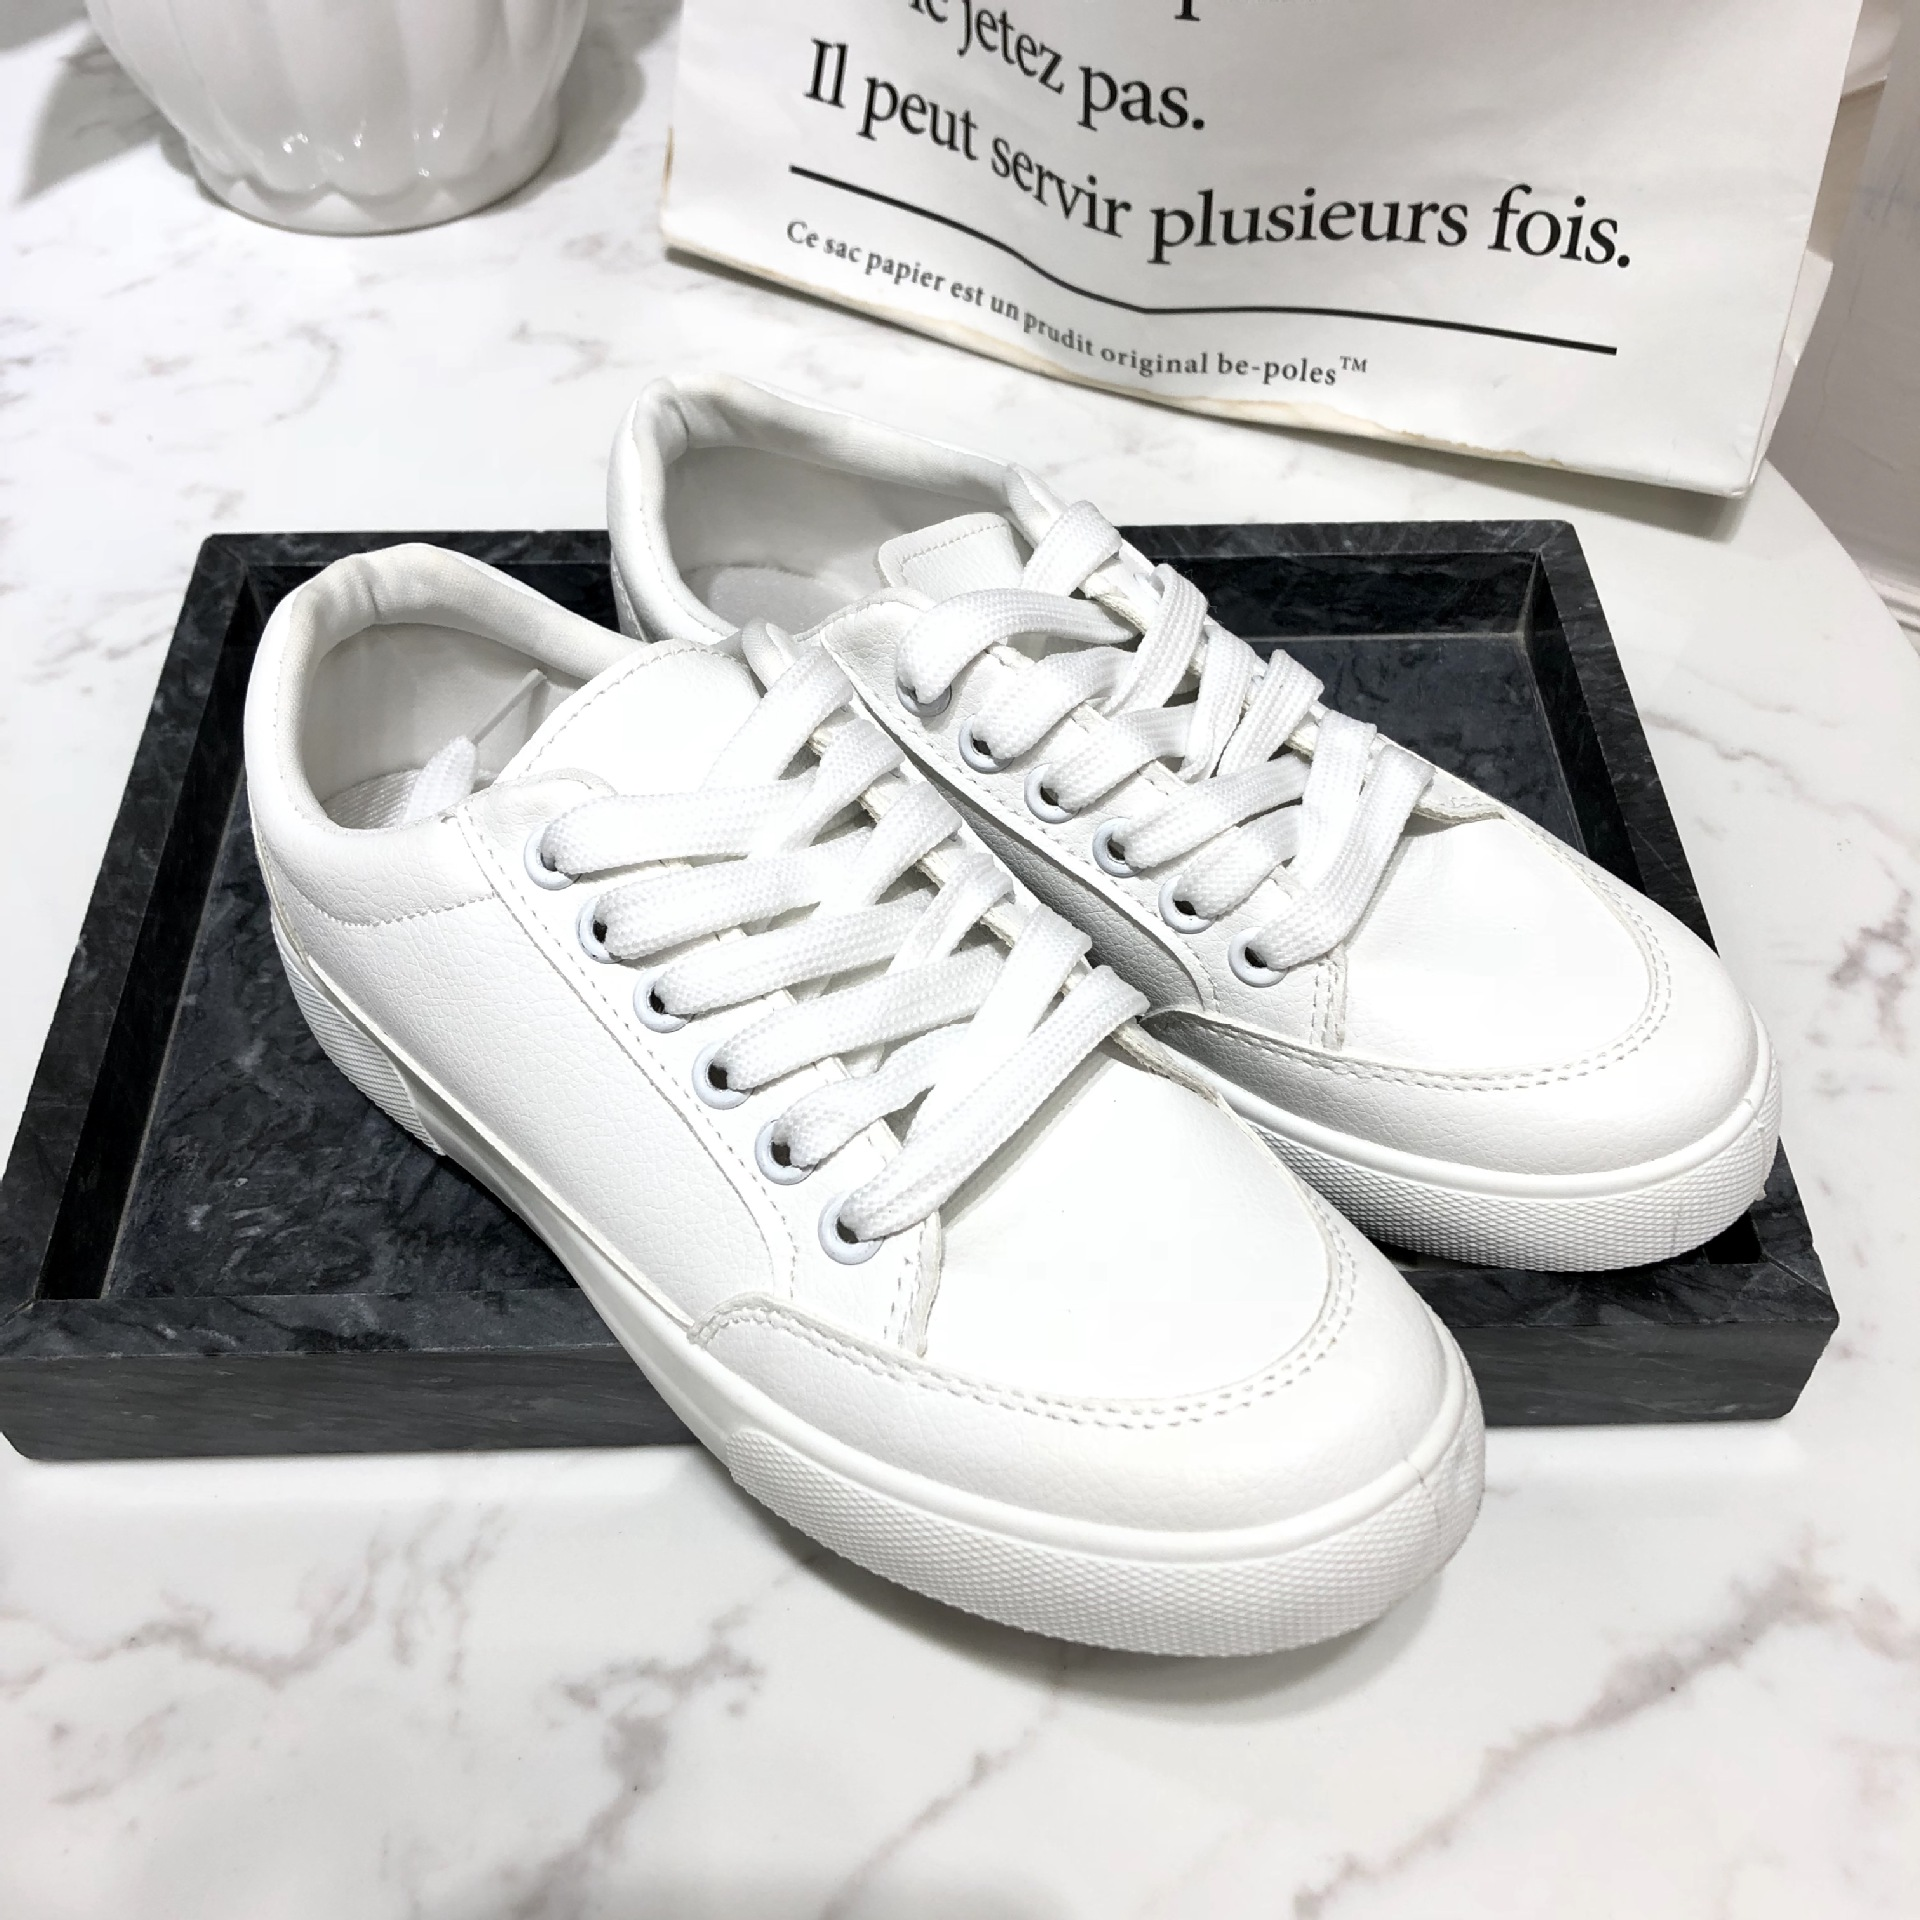 Walking shoes small white shoes women s soft sole shoes casual walking shoes NXS1 NXS17